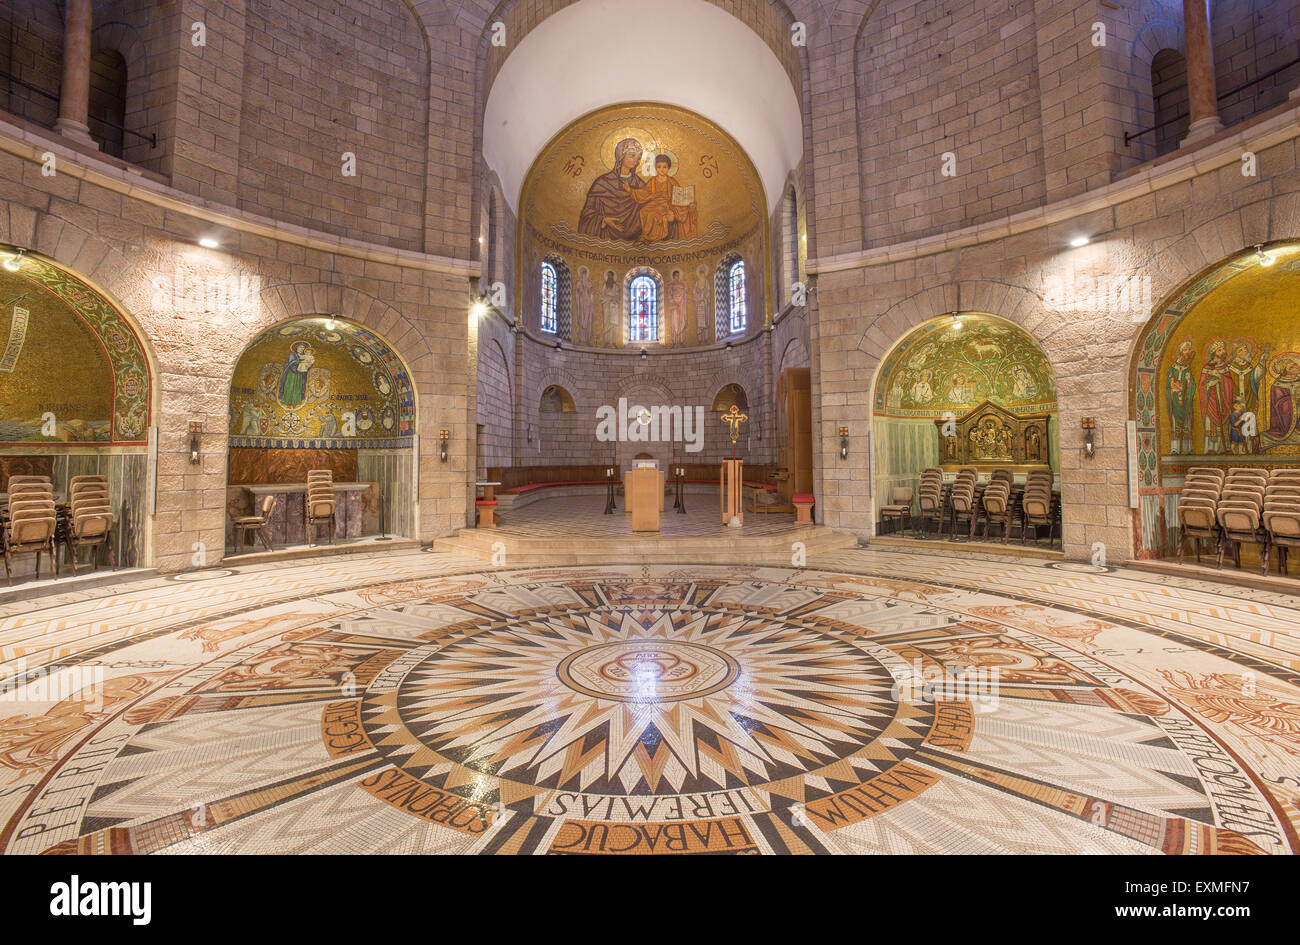 JERUSALEM, ISRAEL - MARCH 3, 2015: The main nave of The Dormition abbey with the mosaic floor designed and carried Stock Photo